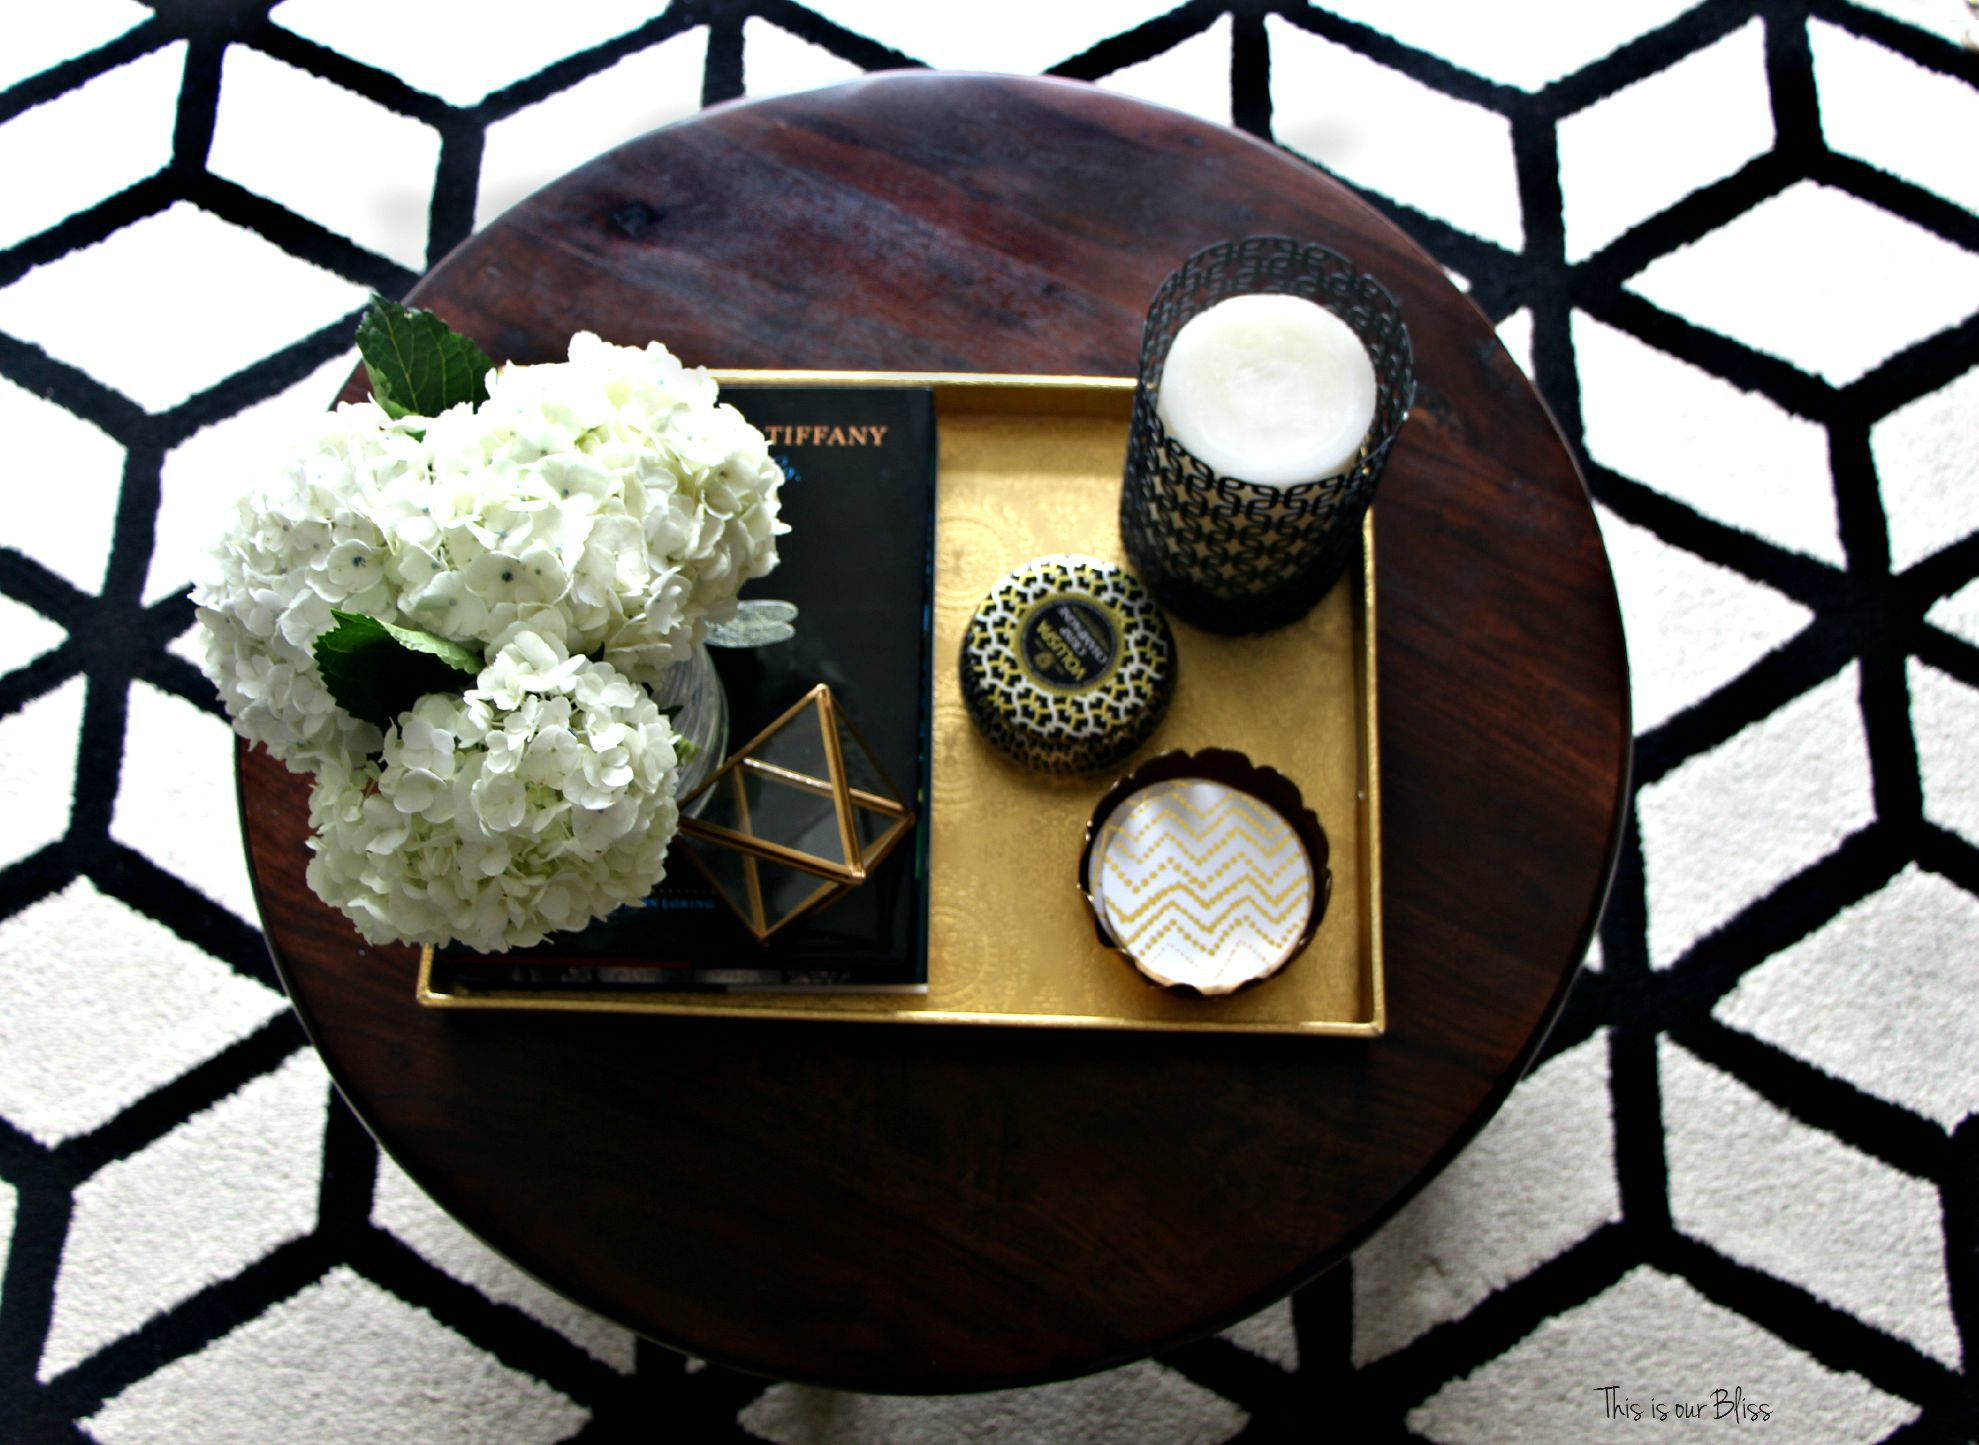 Stylish Coffee Table Books Holiday Gift Guide